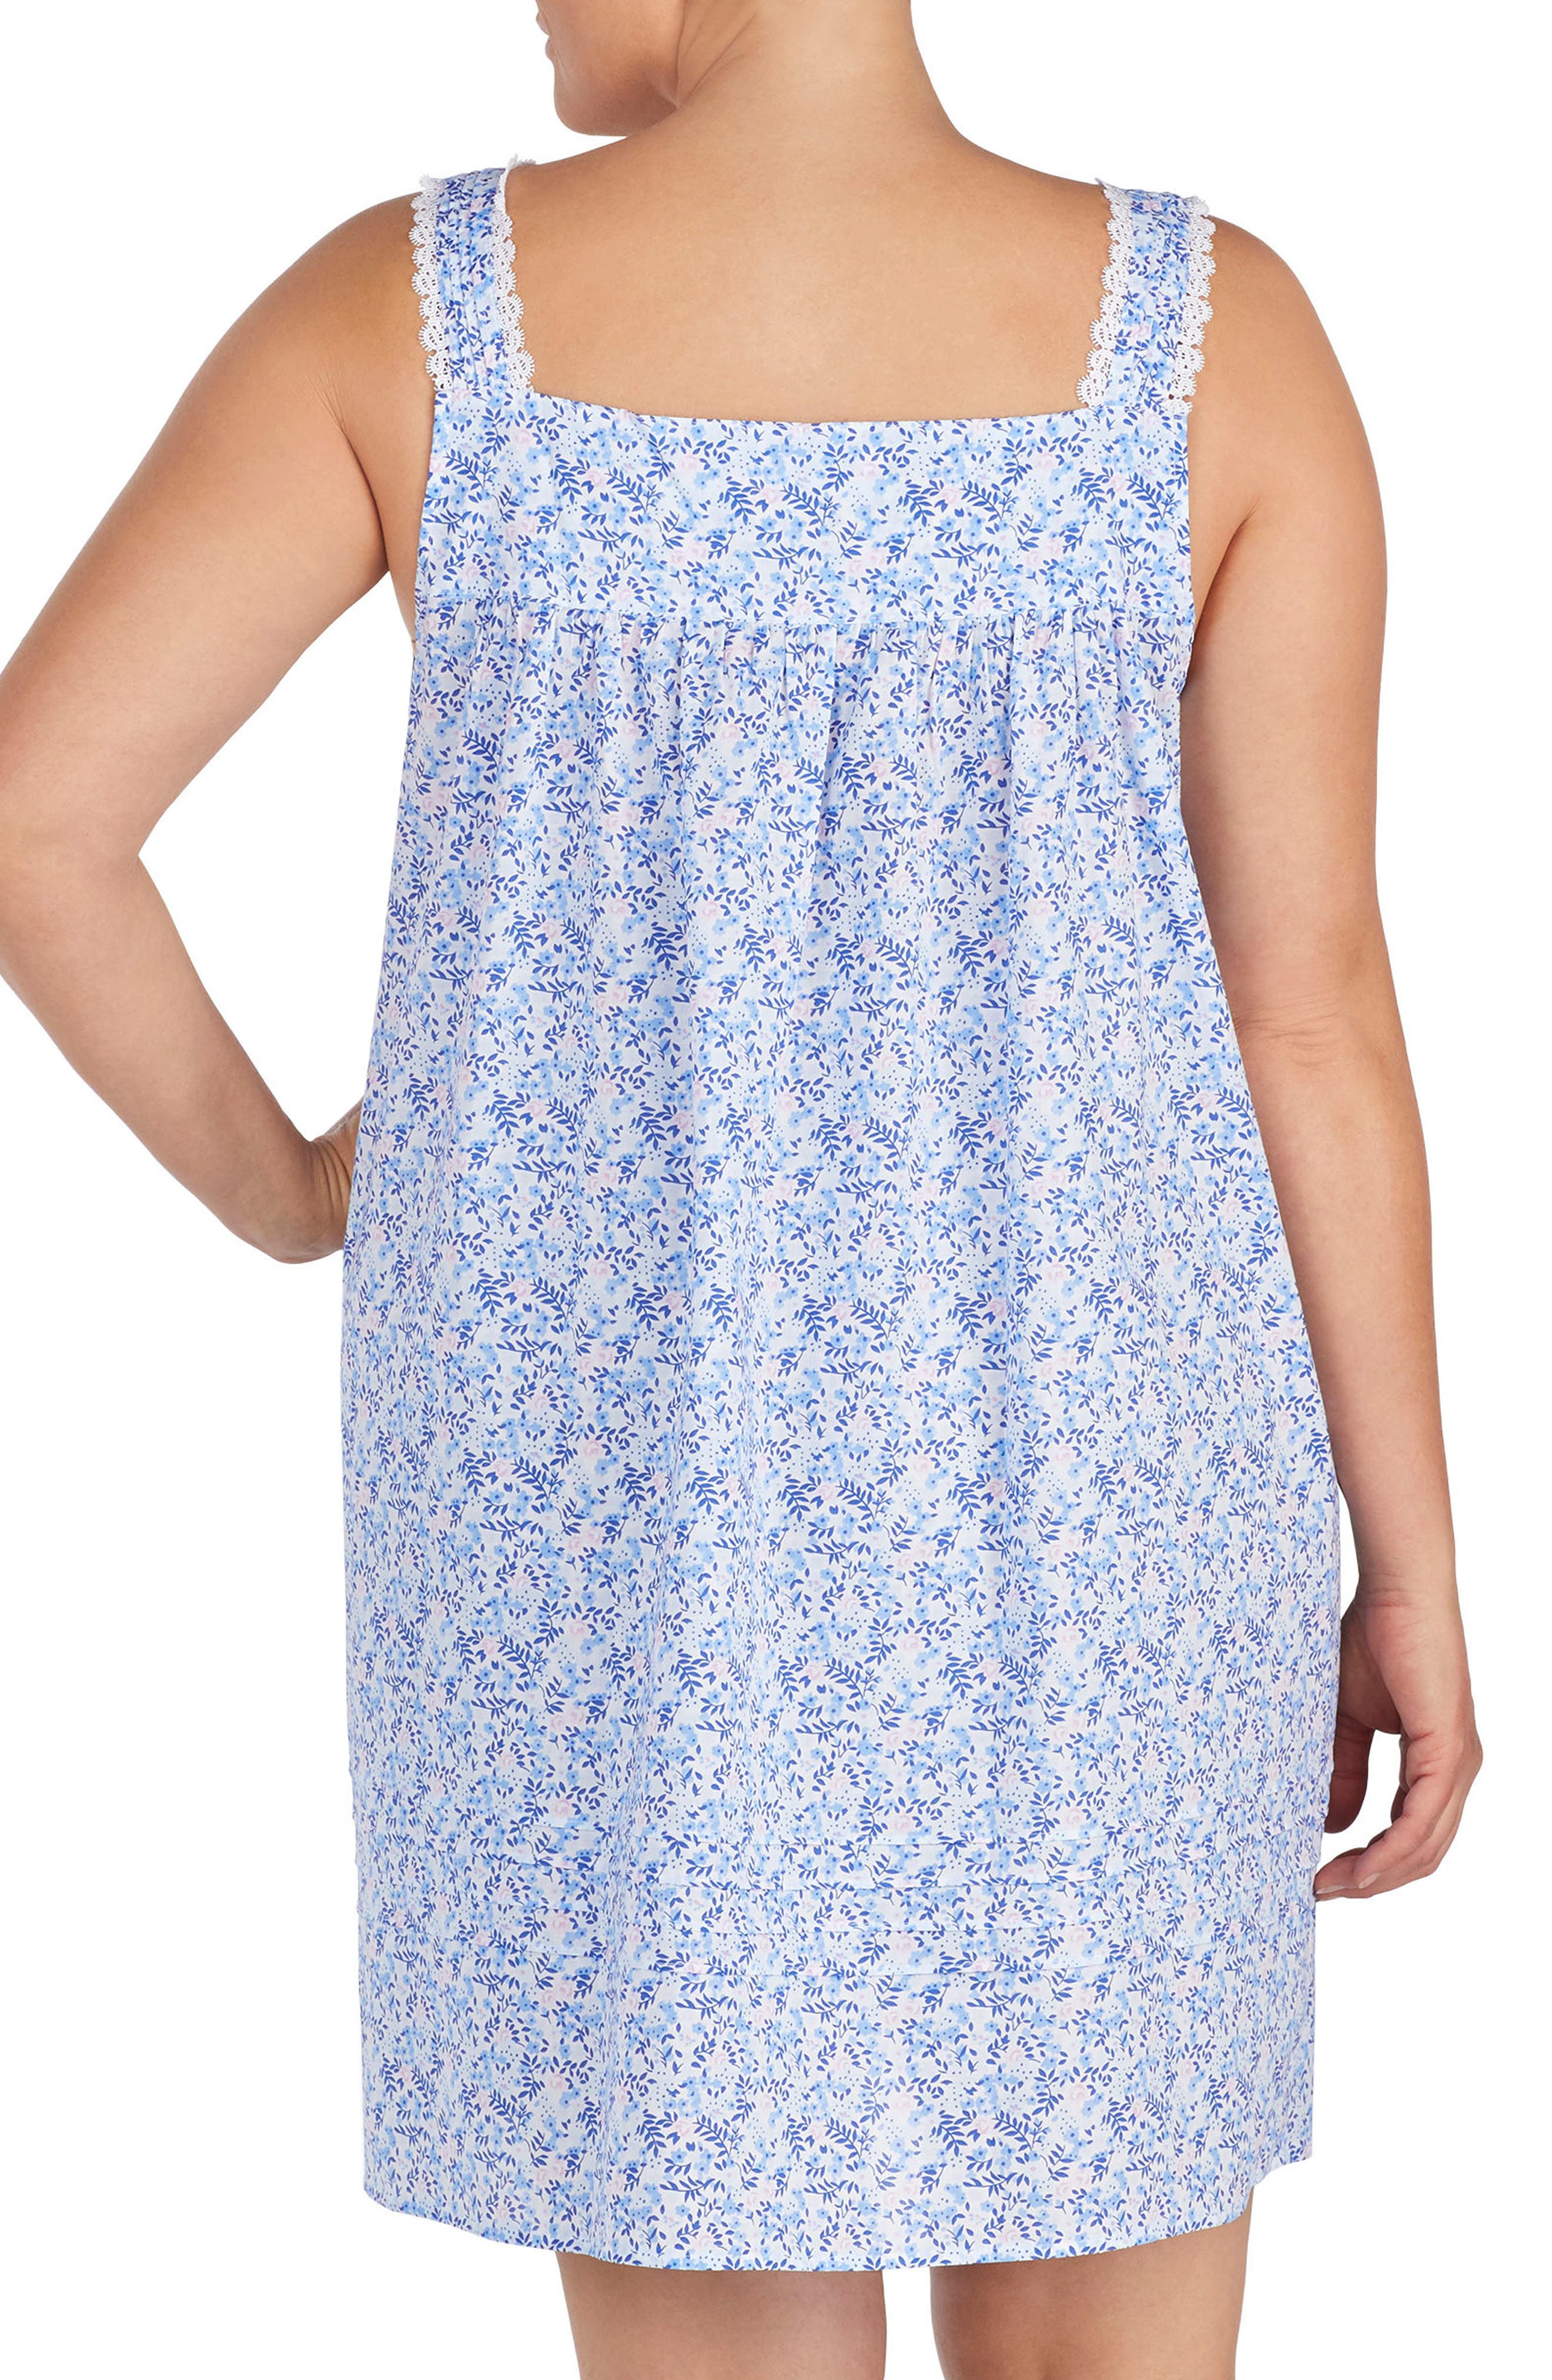 Cotton Lawn Chemise,                             Alternate thumbnail 2, color,